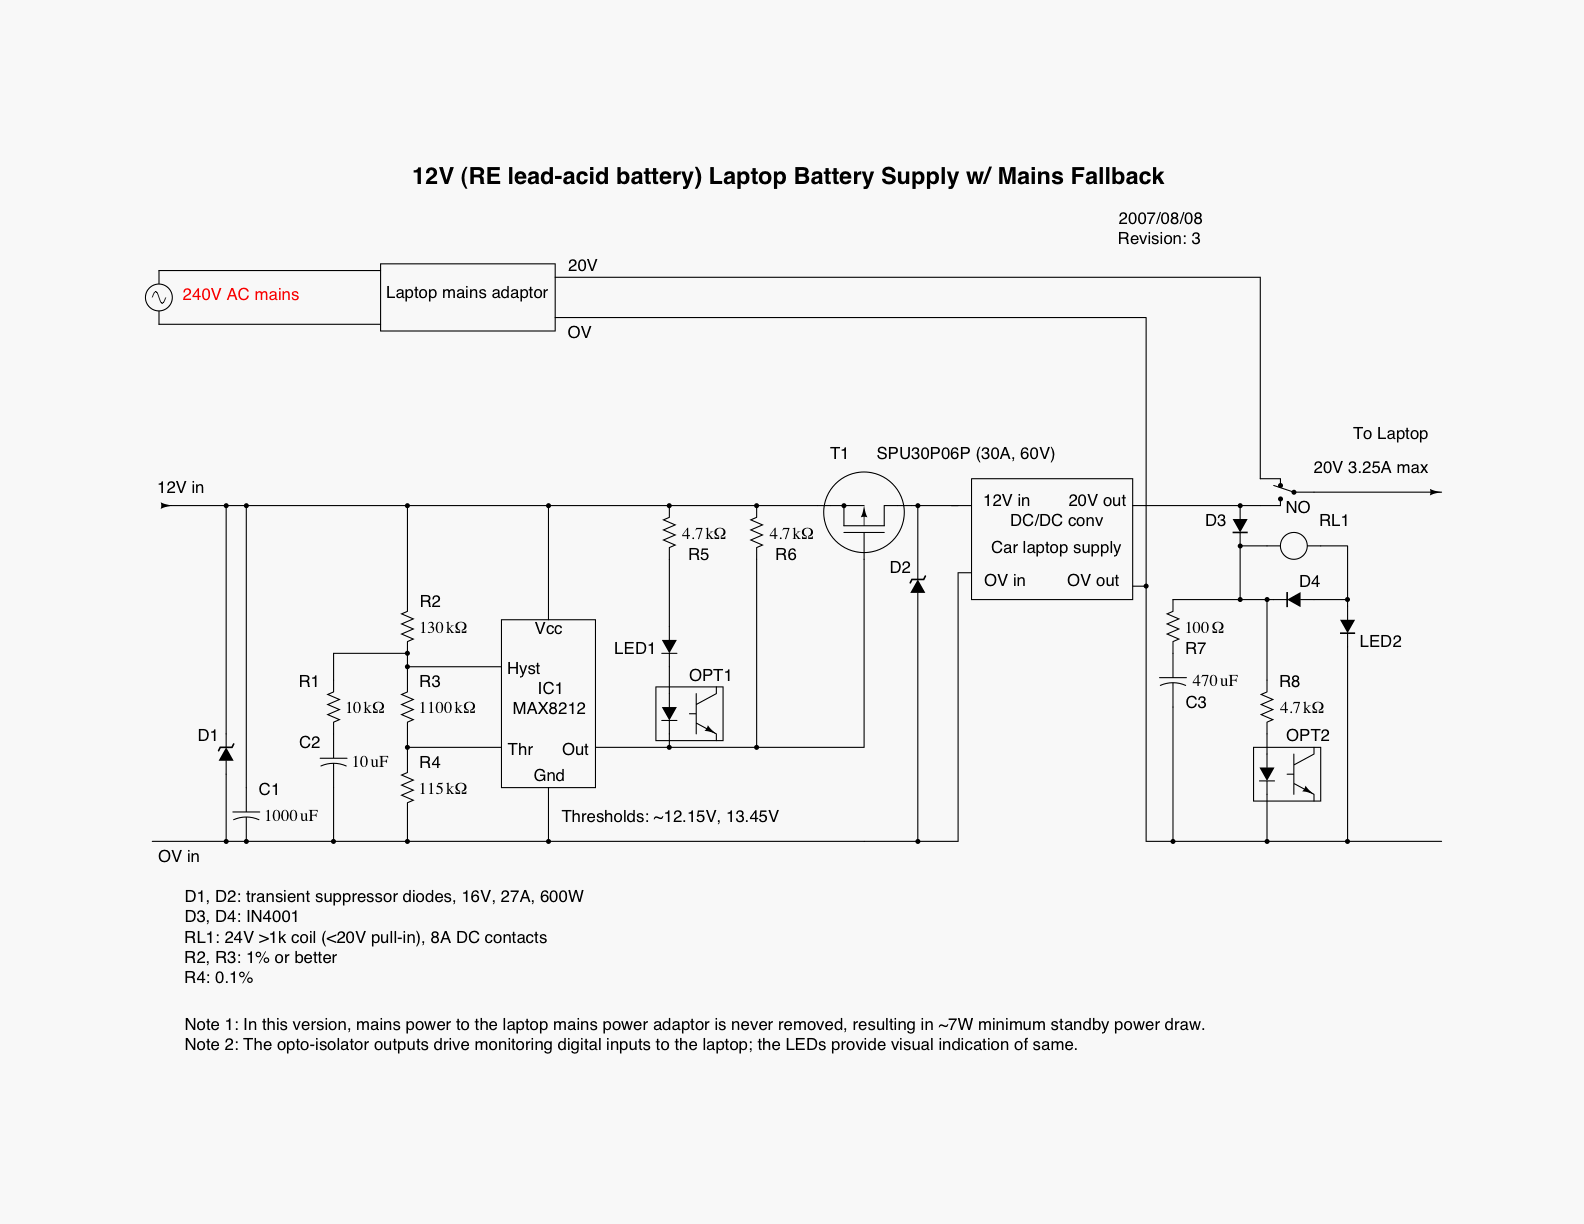 hight resolution of low voltage disconnect for 12v re system 2007 earth noteslvd circuit diagram 21